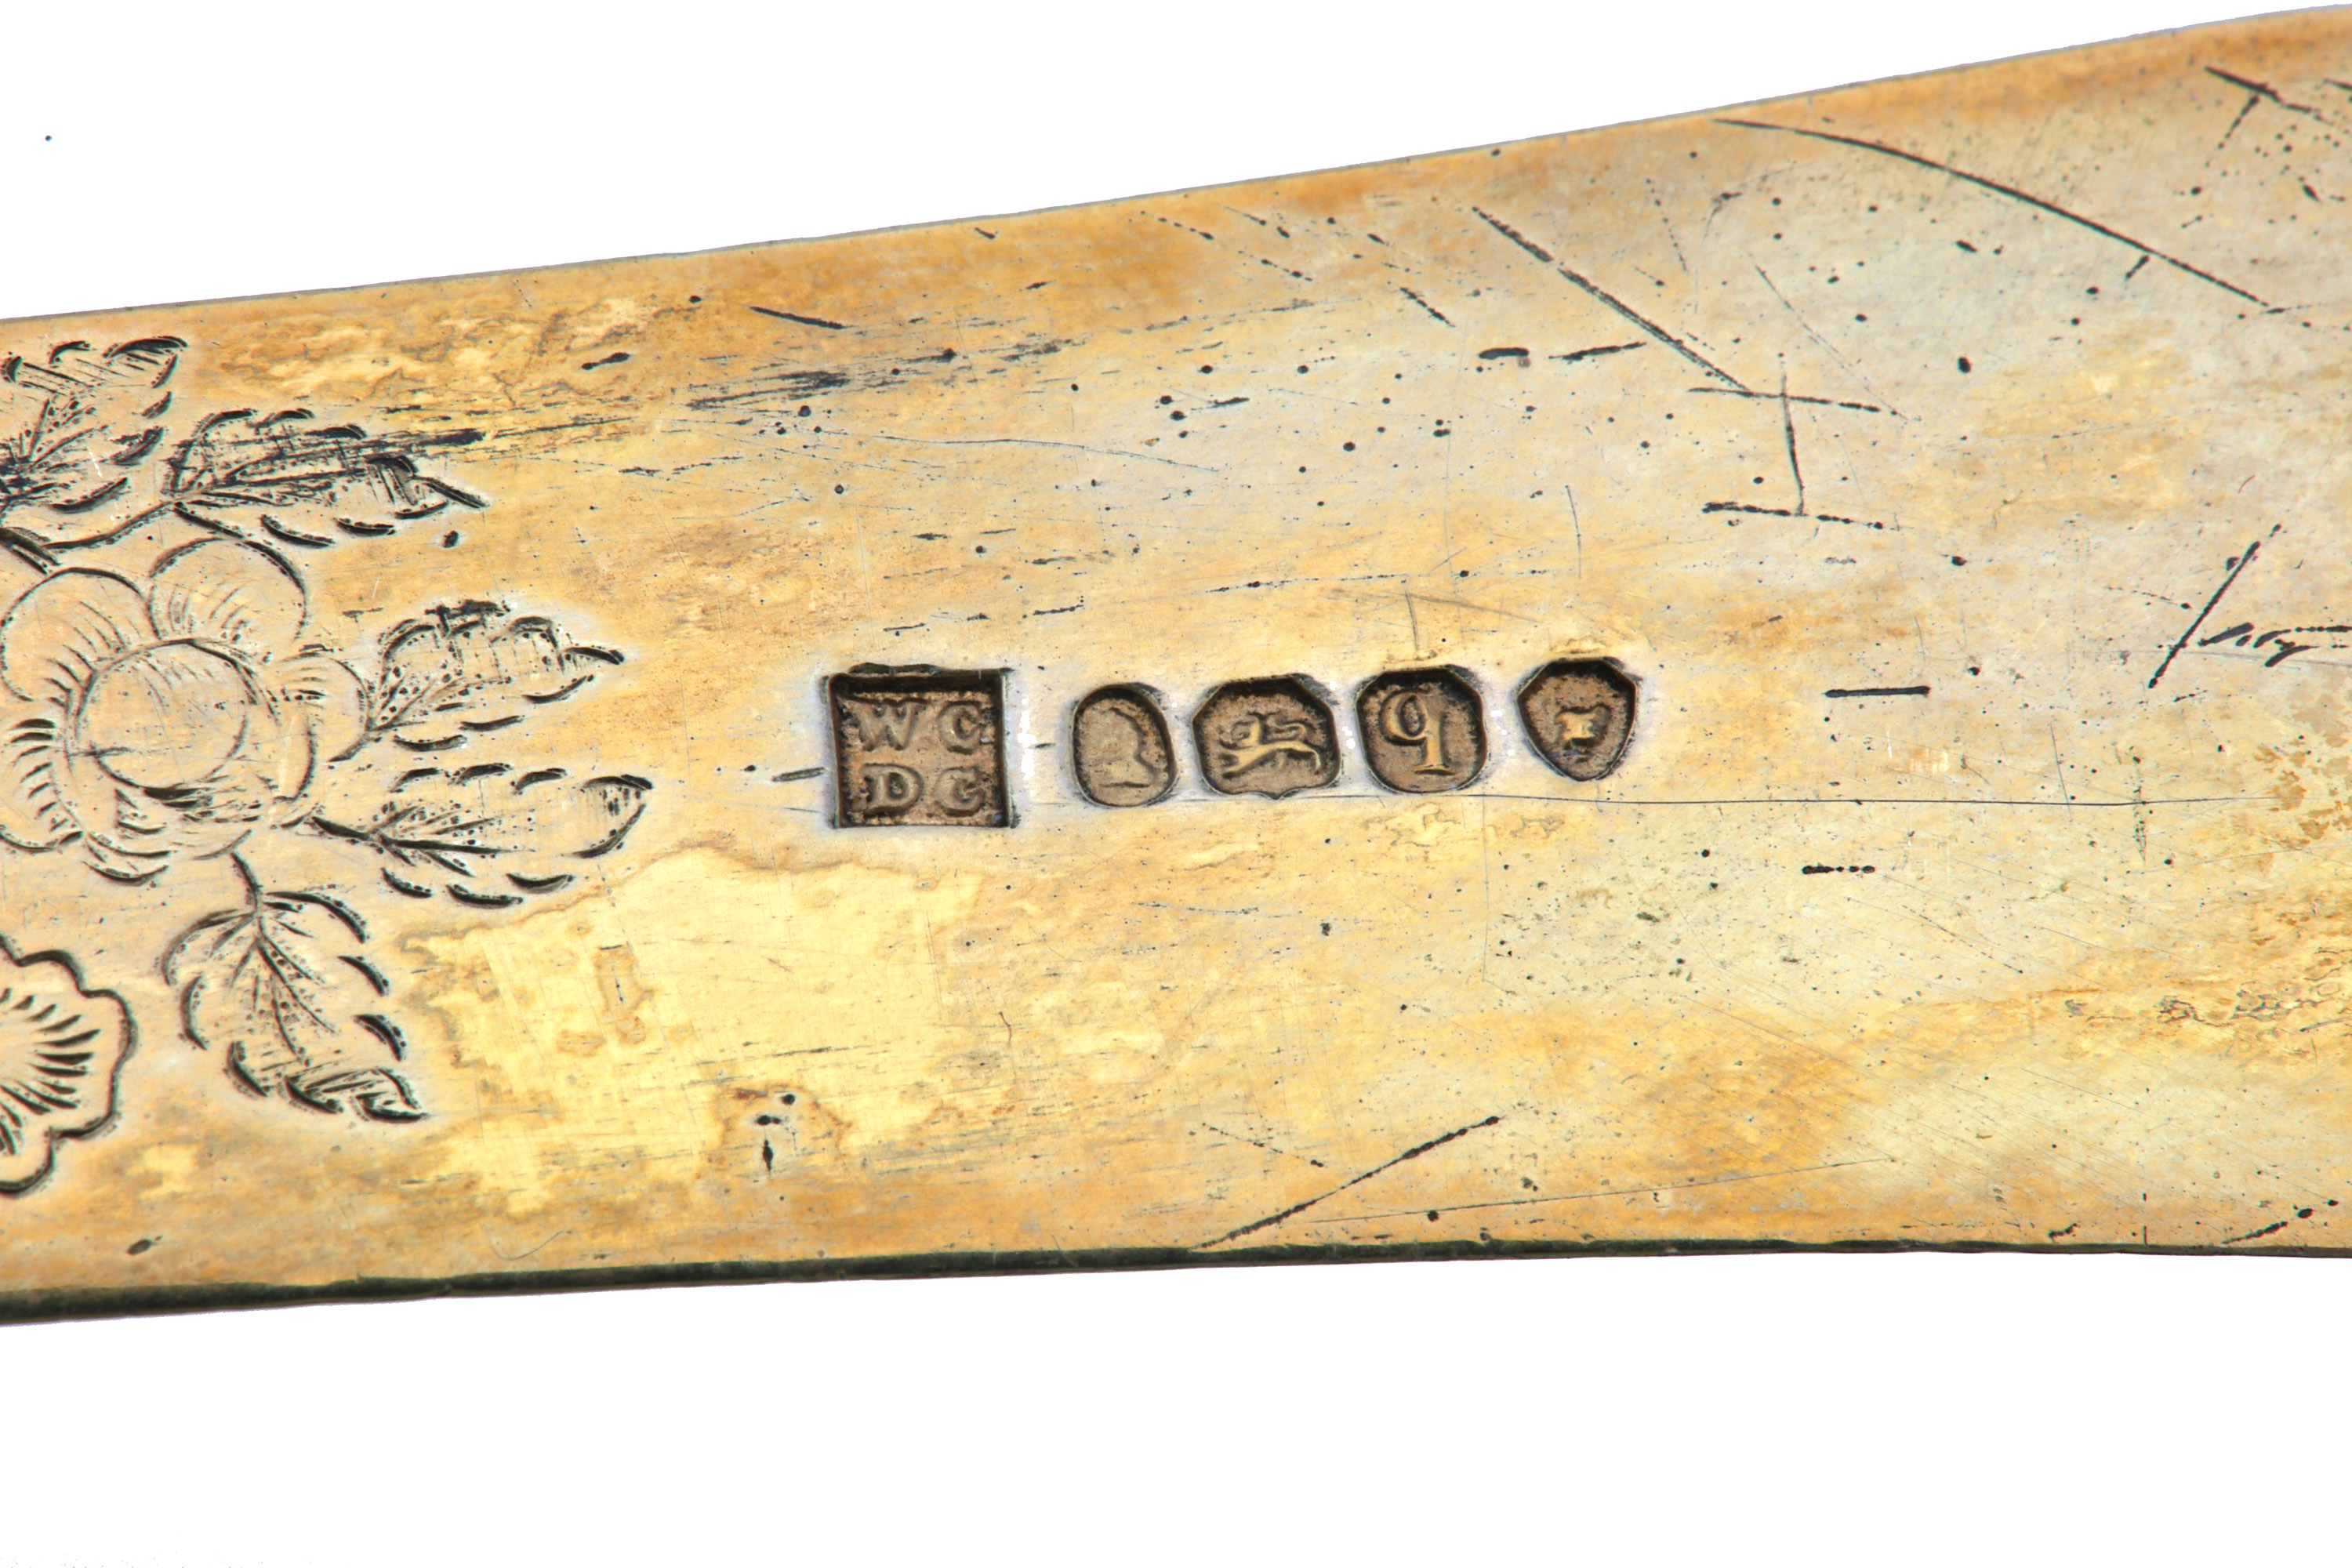 Lot 29 - A silver-gilt paper knife, the blade London 1831, maker's mark WC over DC, associated with a late 19